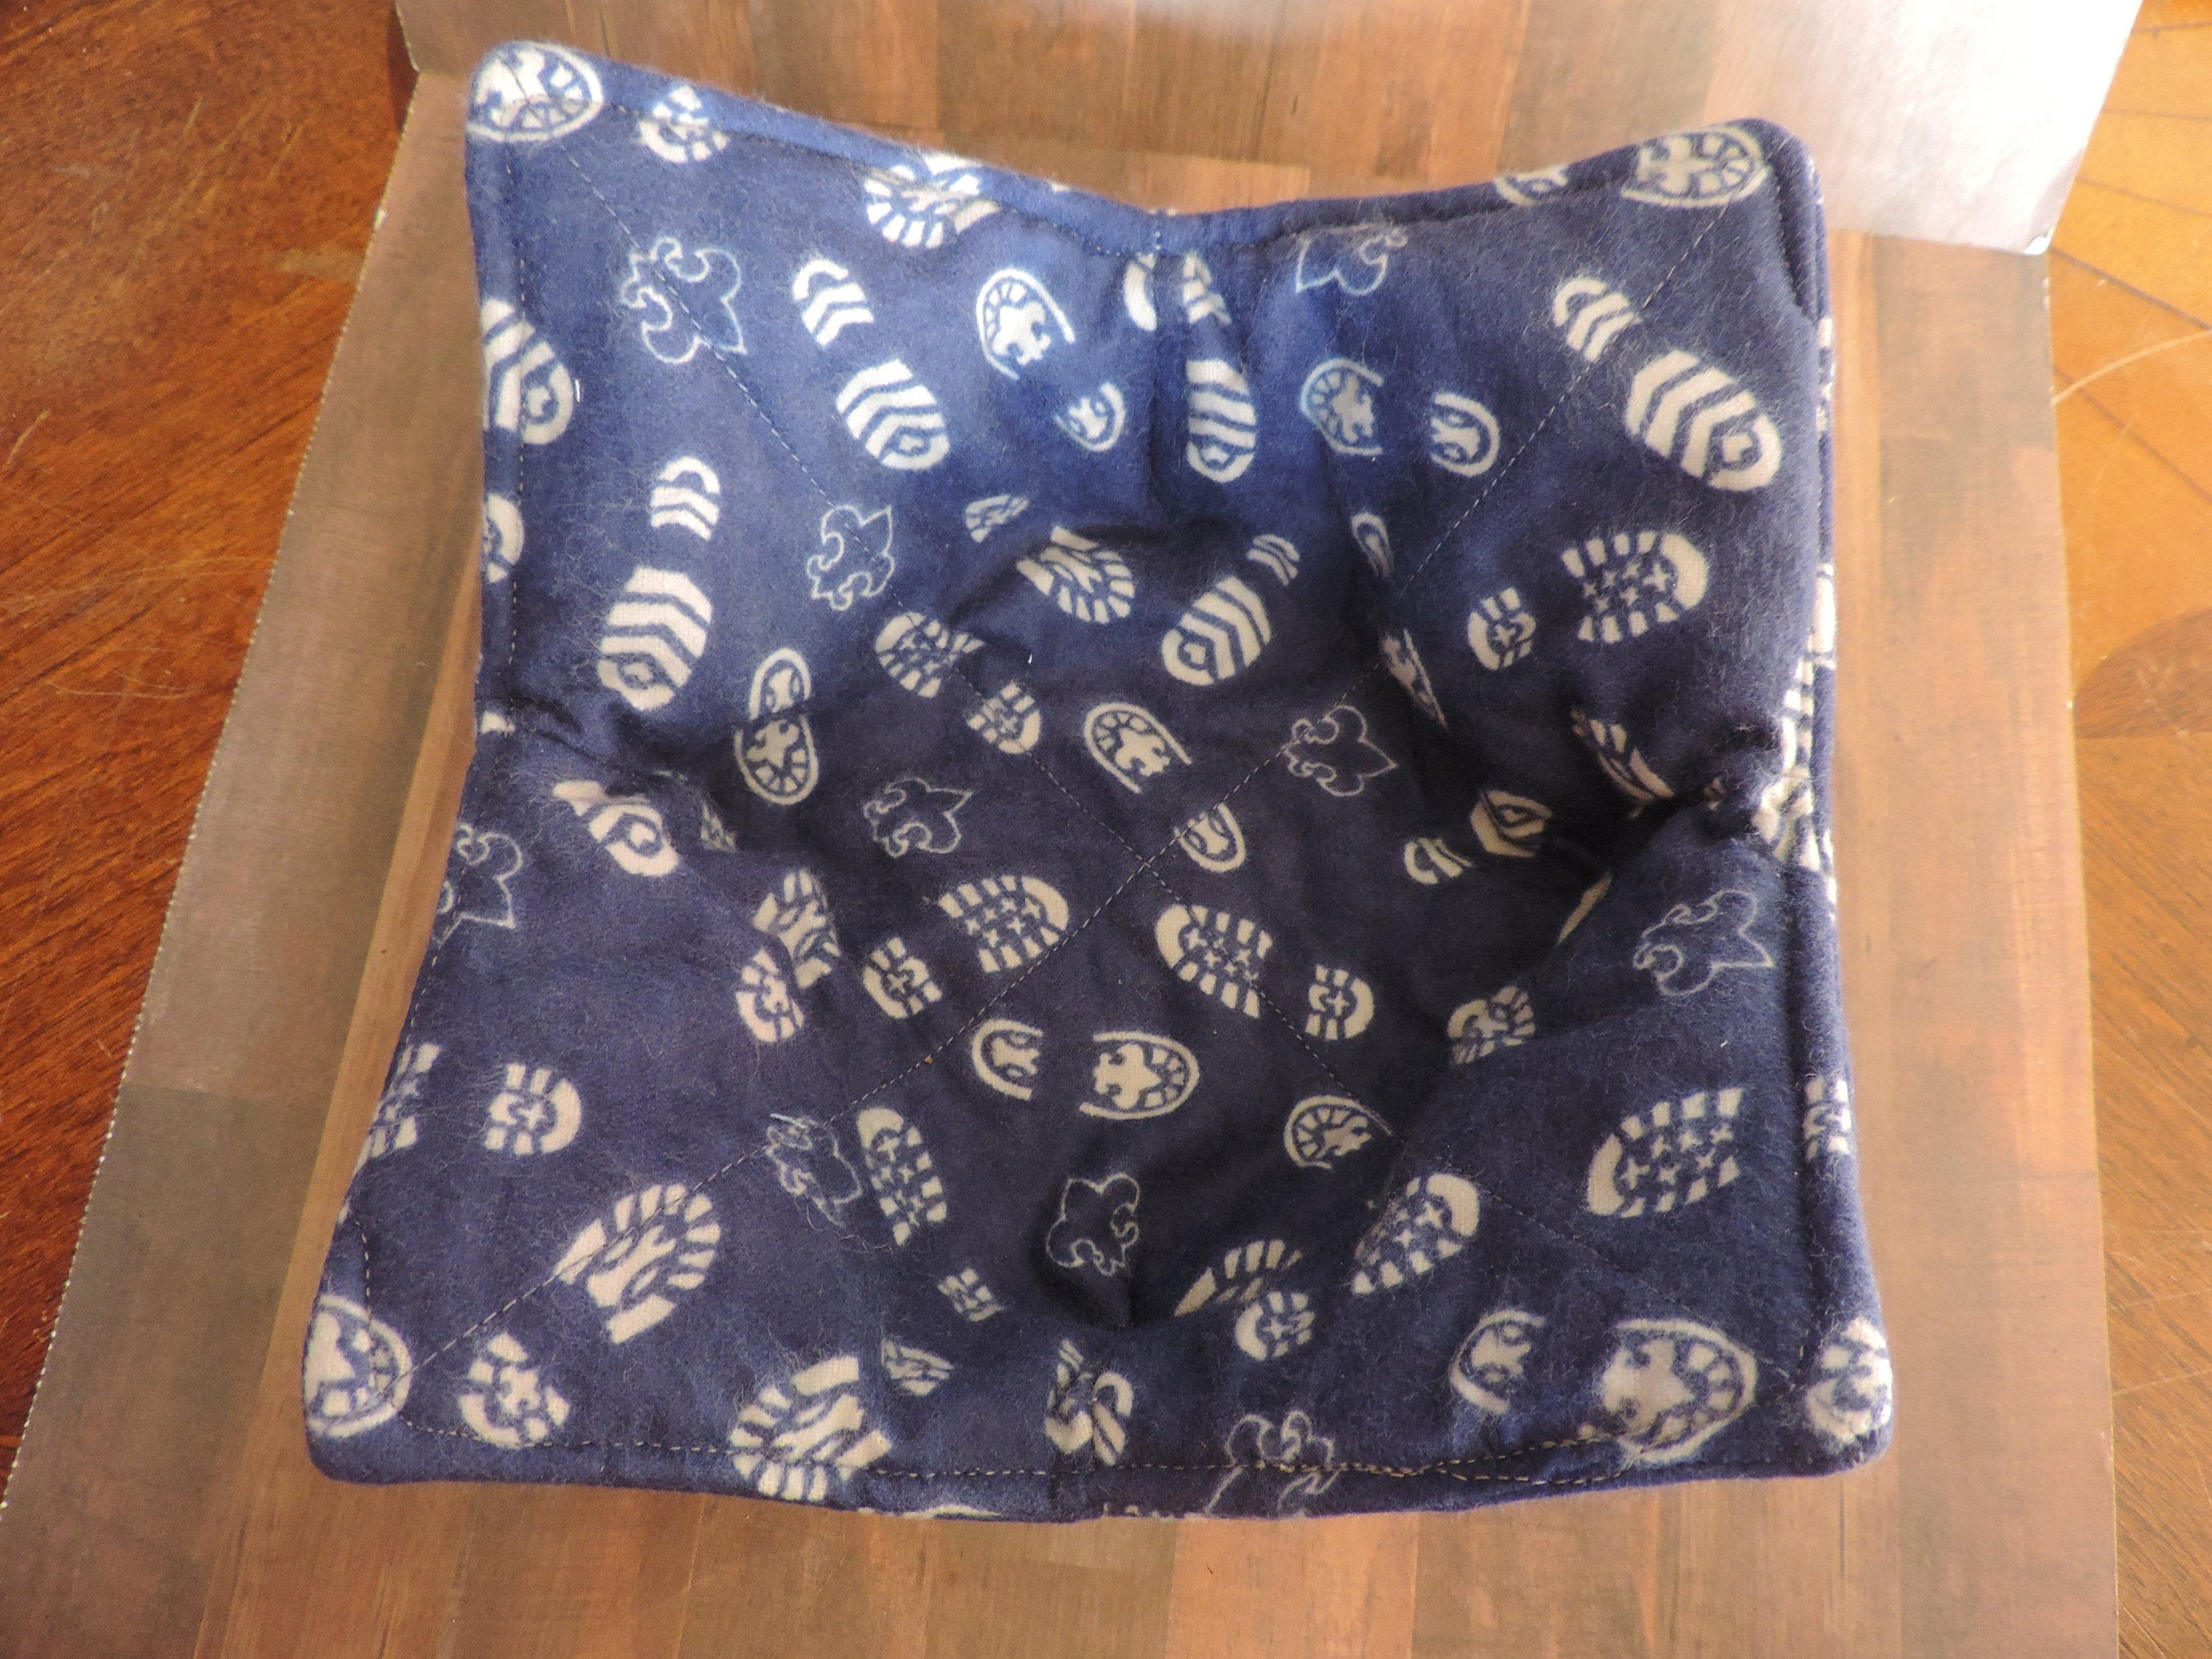 Boy Scout Microwave Bowl Cozy Microwave Pot Holder Ice